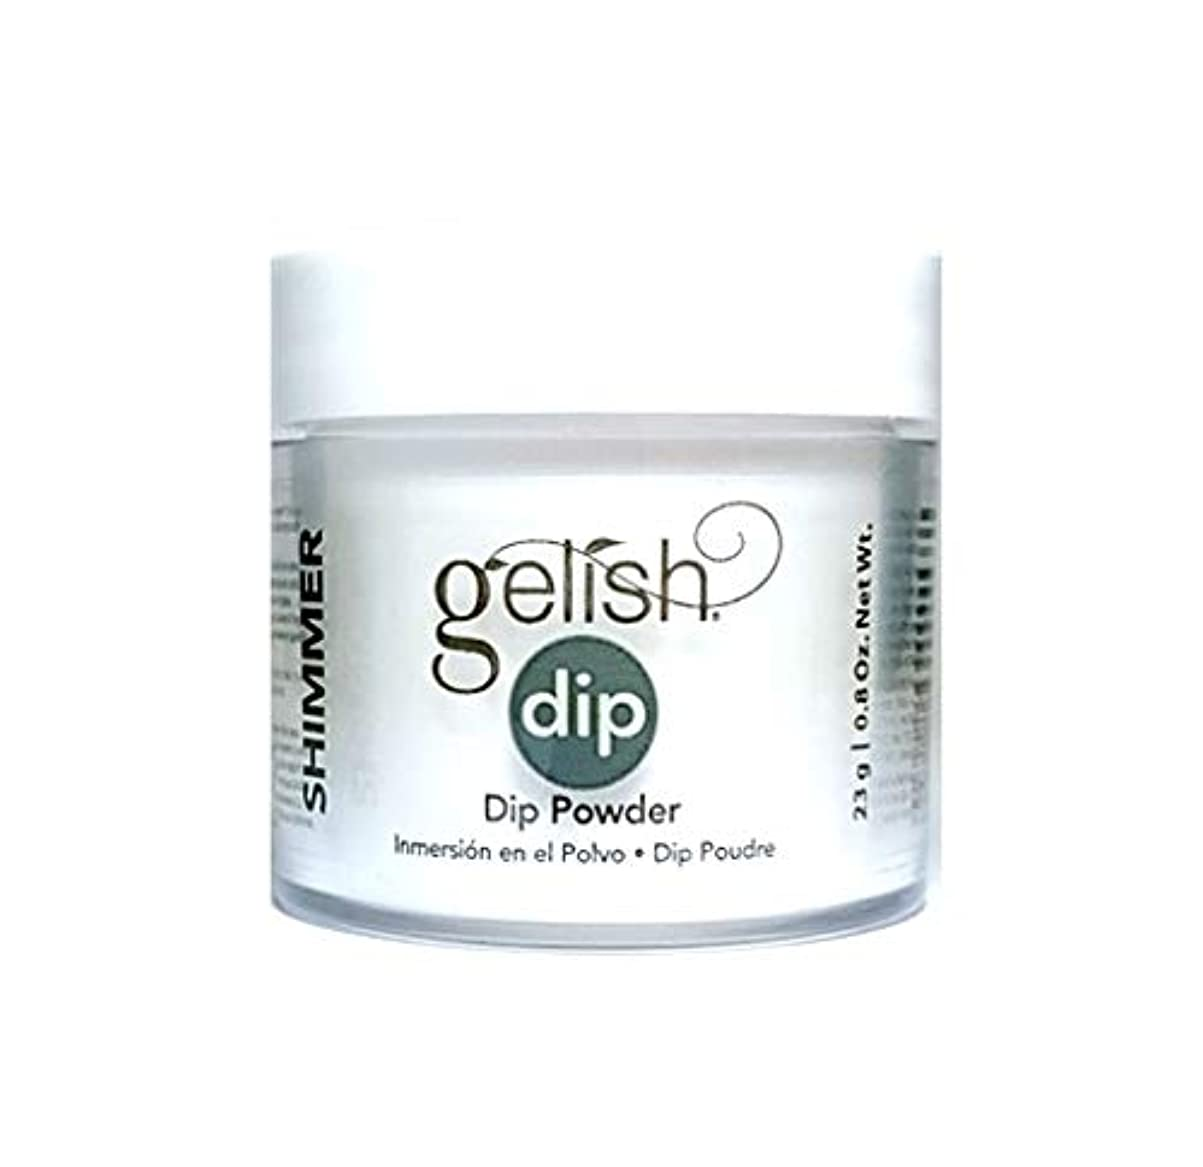 オーナー瞑想するできないHarmony Gelish - Dip Powder - Izzy Wizzy, Let's Get Busy - 23g / 0.8oz